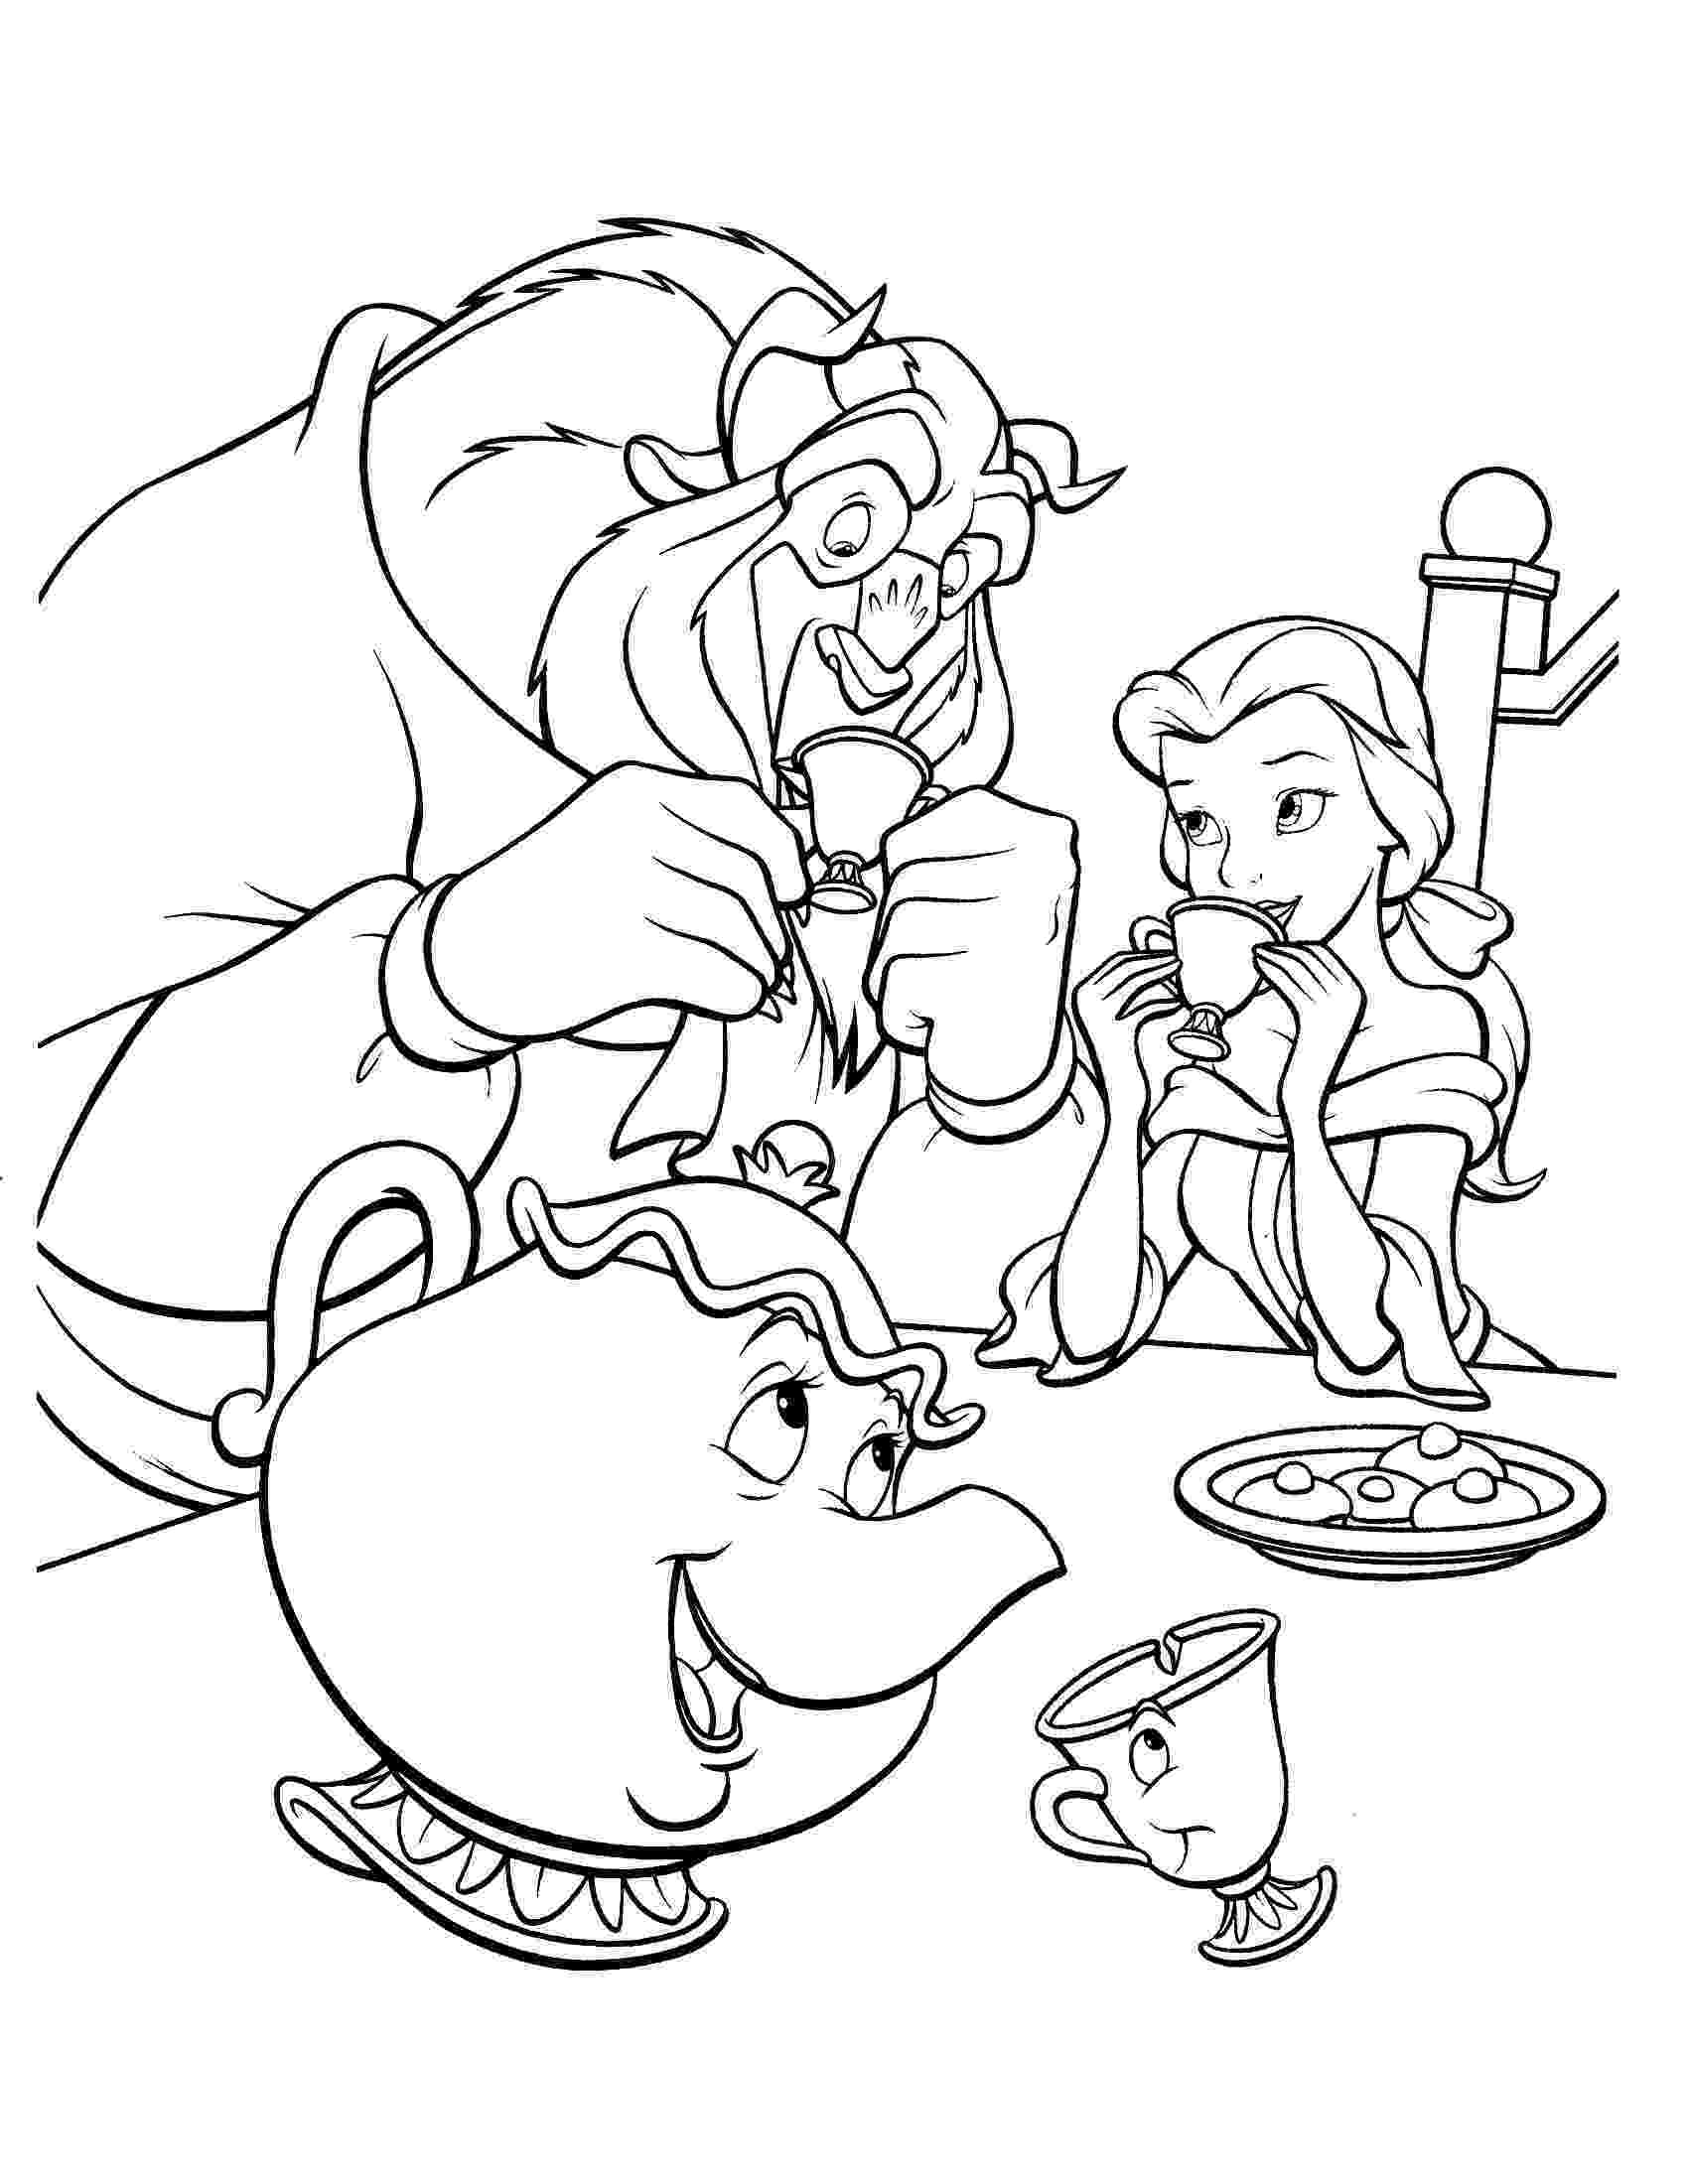 beauty and the beast coloring pages tale as old as time cute kawaii resources beauty coloring pages and beast the